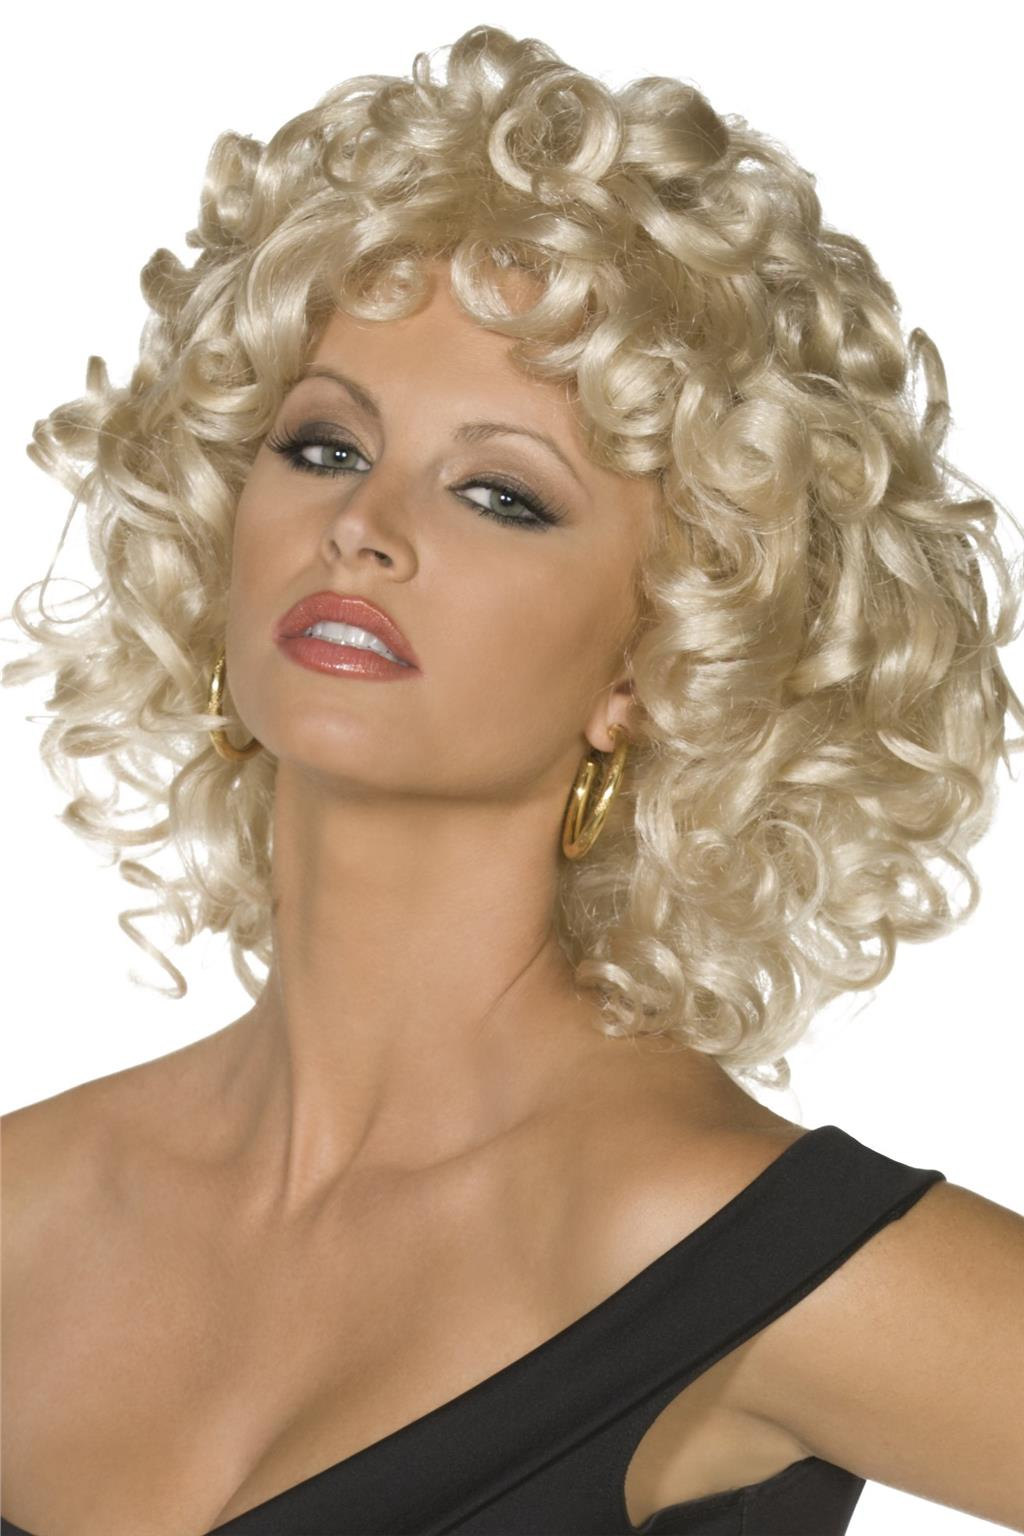 Details about LADIES 50 s SANDY LAST SCENE WIG WOMENS CURLED BLONDE GREASE  FANCY DRESS HAIRCUT cb3f4d969a